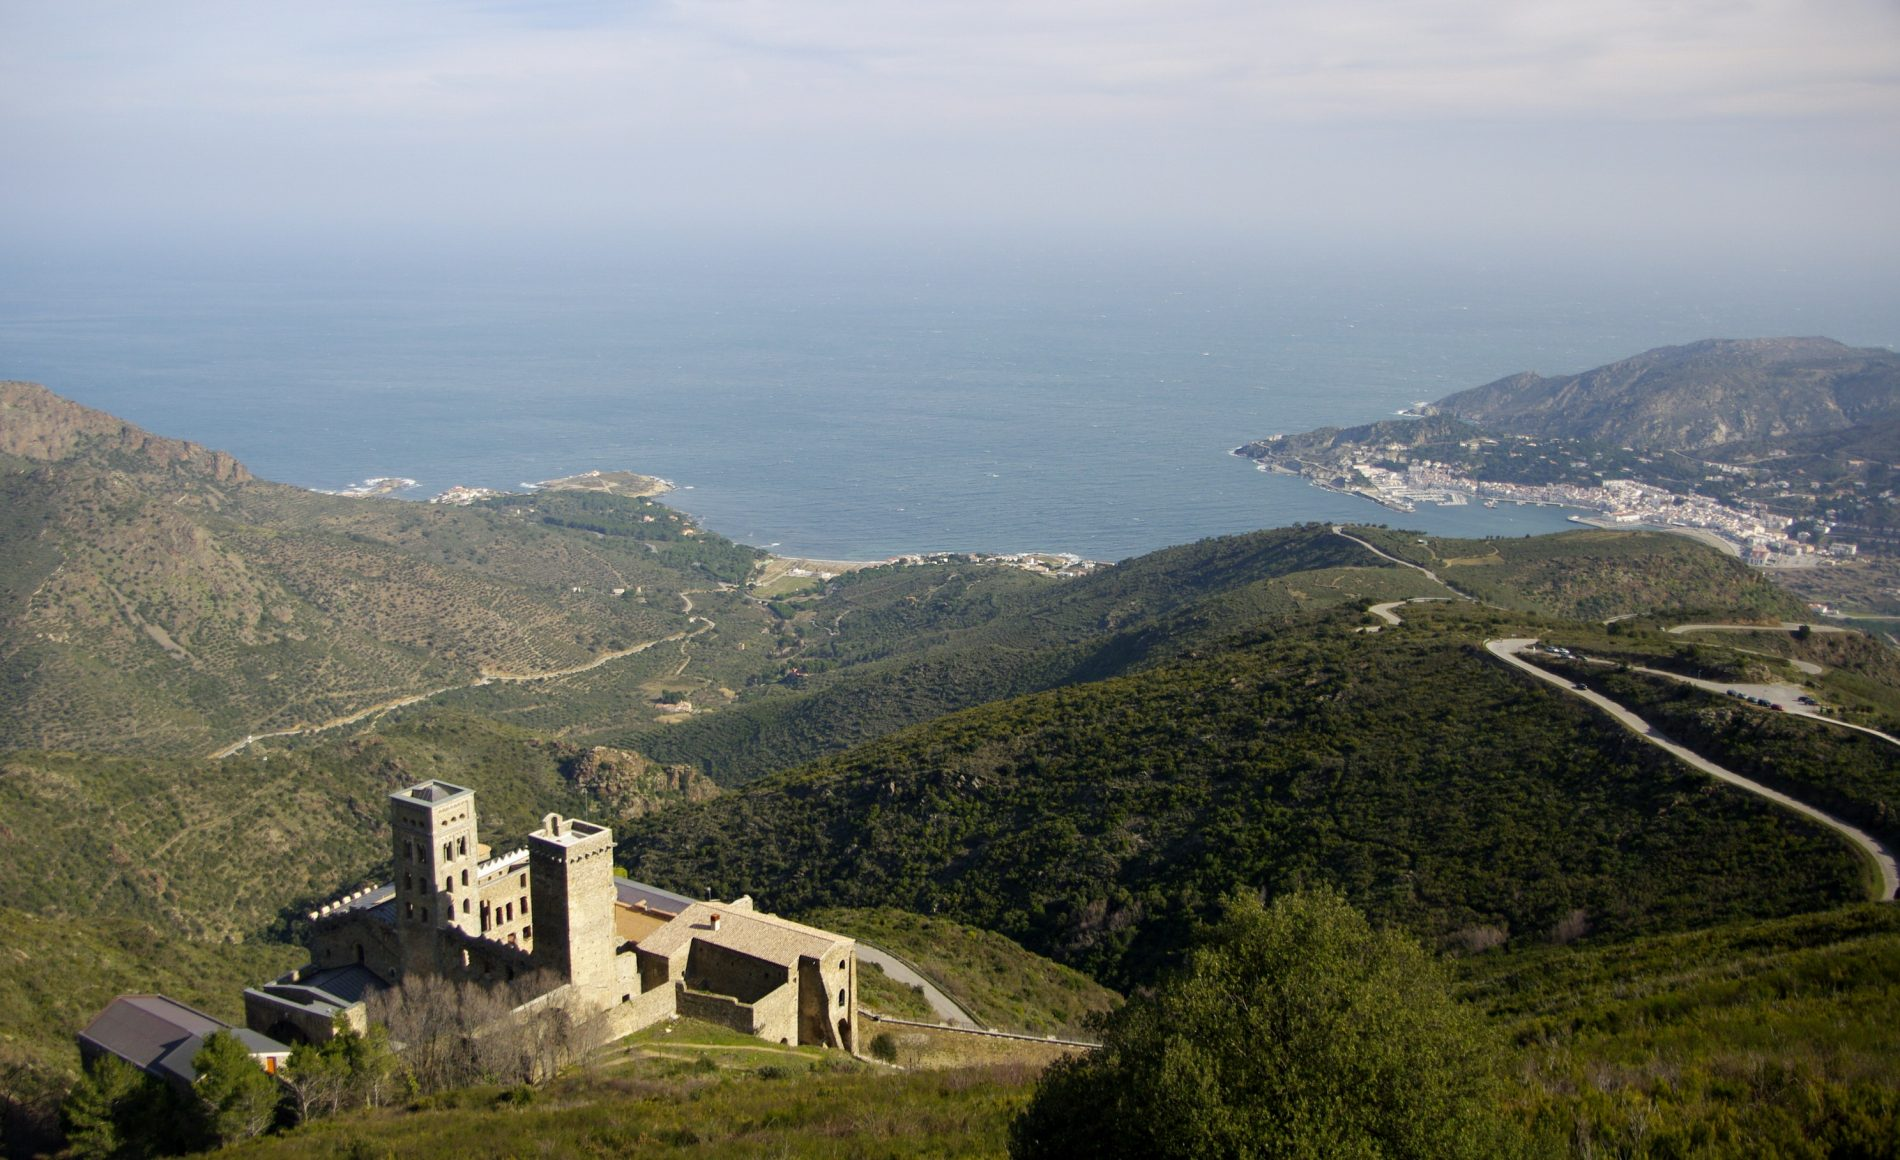 Monastery of El Port de la Selva